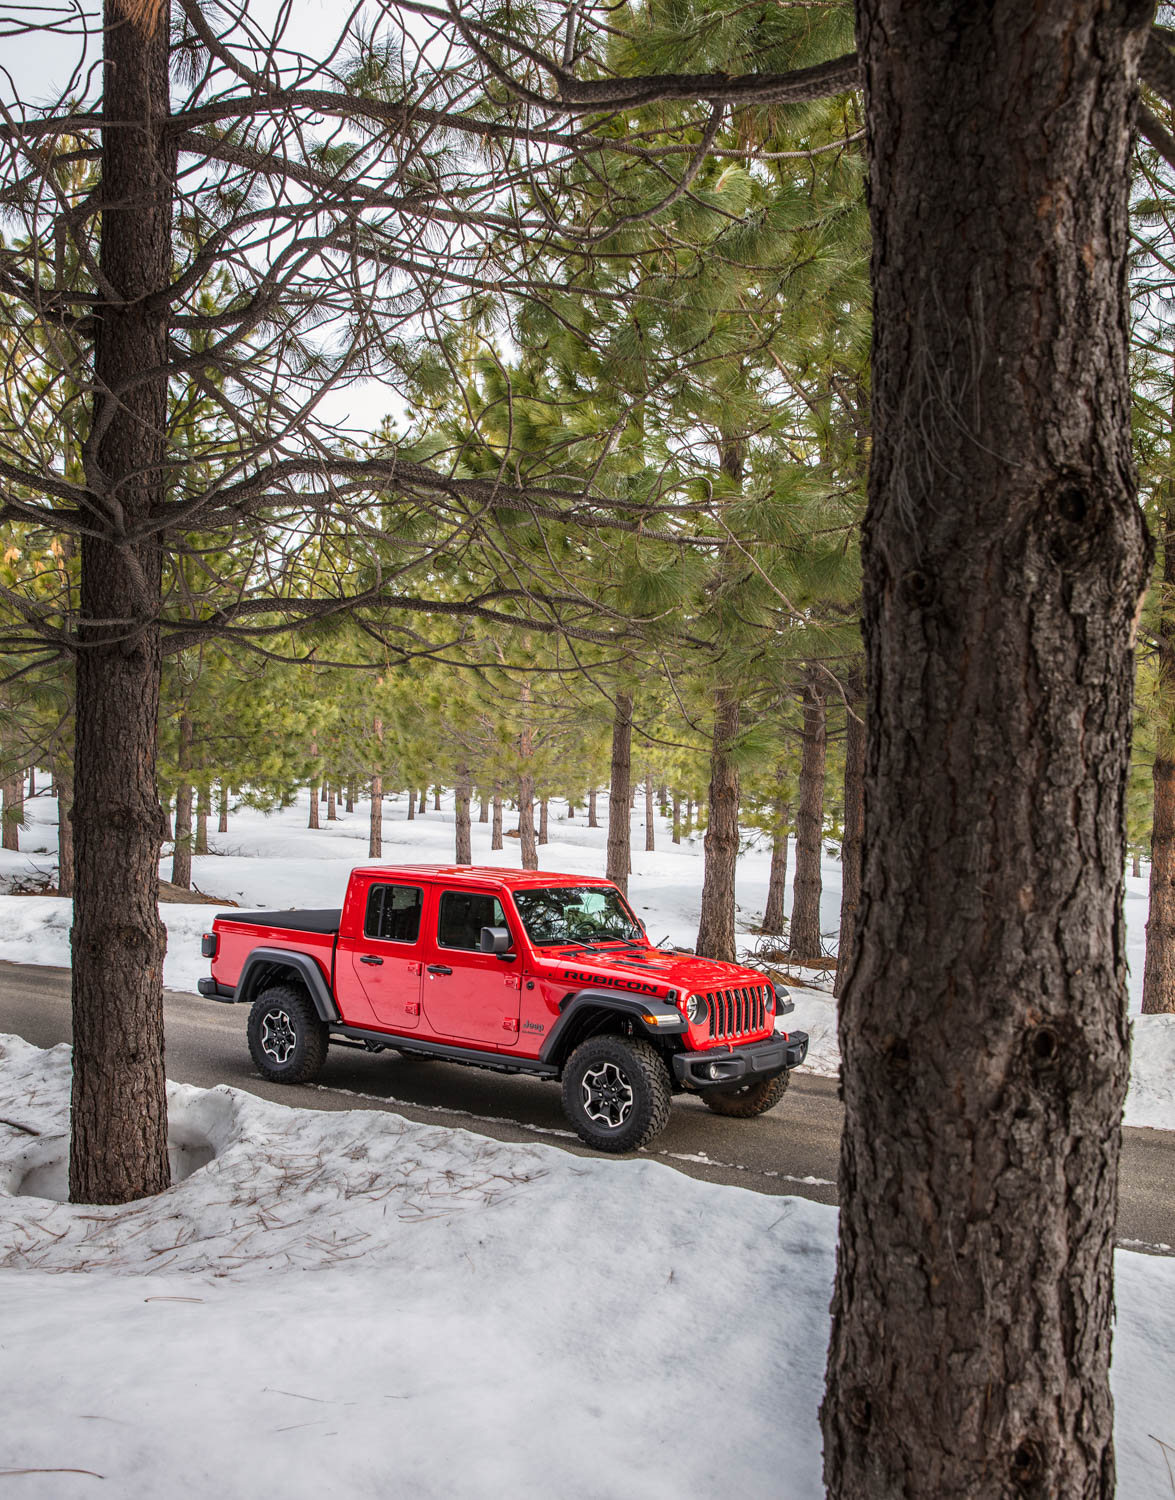 2020 Jeep Gladiator in the woods